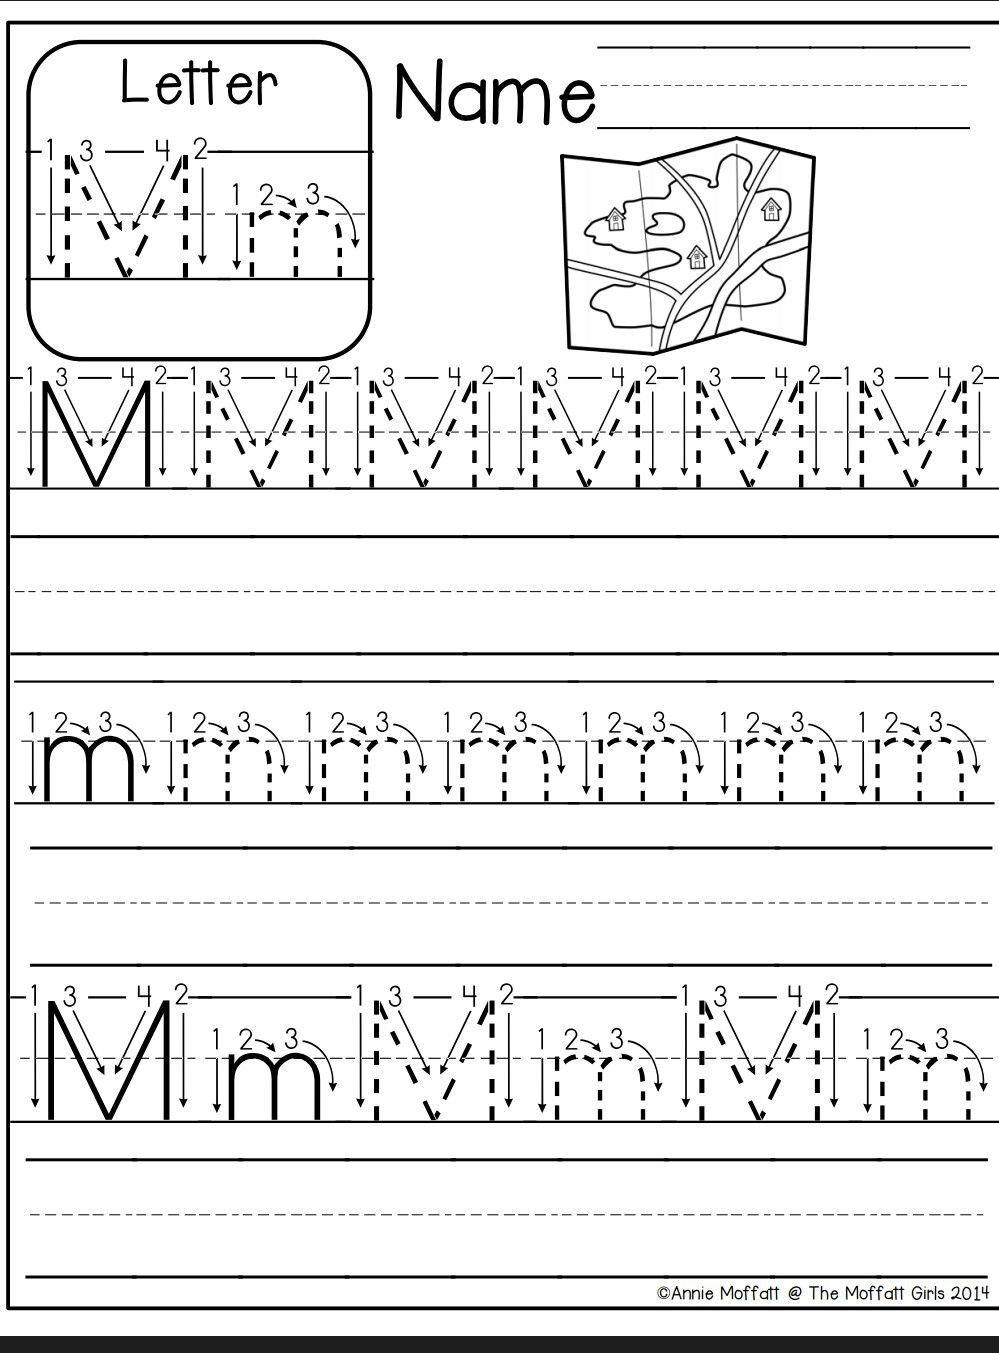 Letter M Worksheet | Preschool Writing, Letter M Worksheets pertaining to M Letter Worksheets Preschool